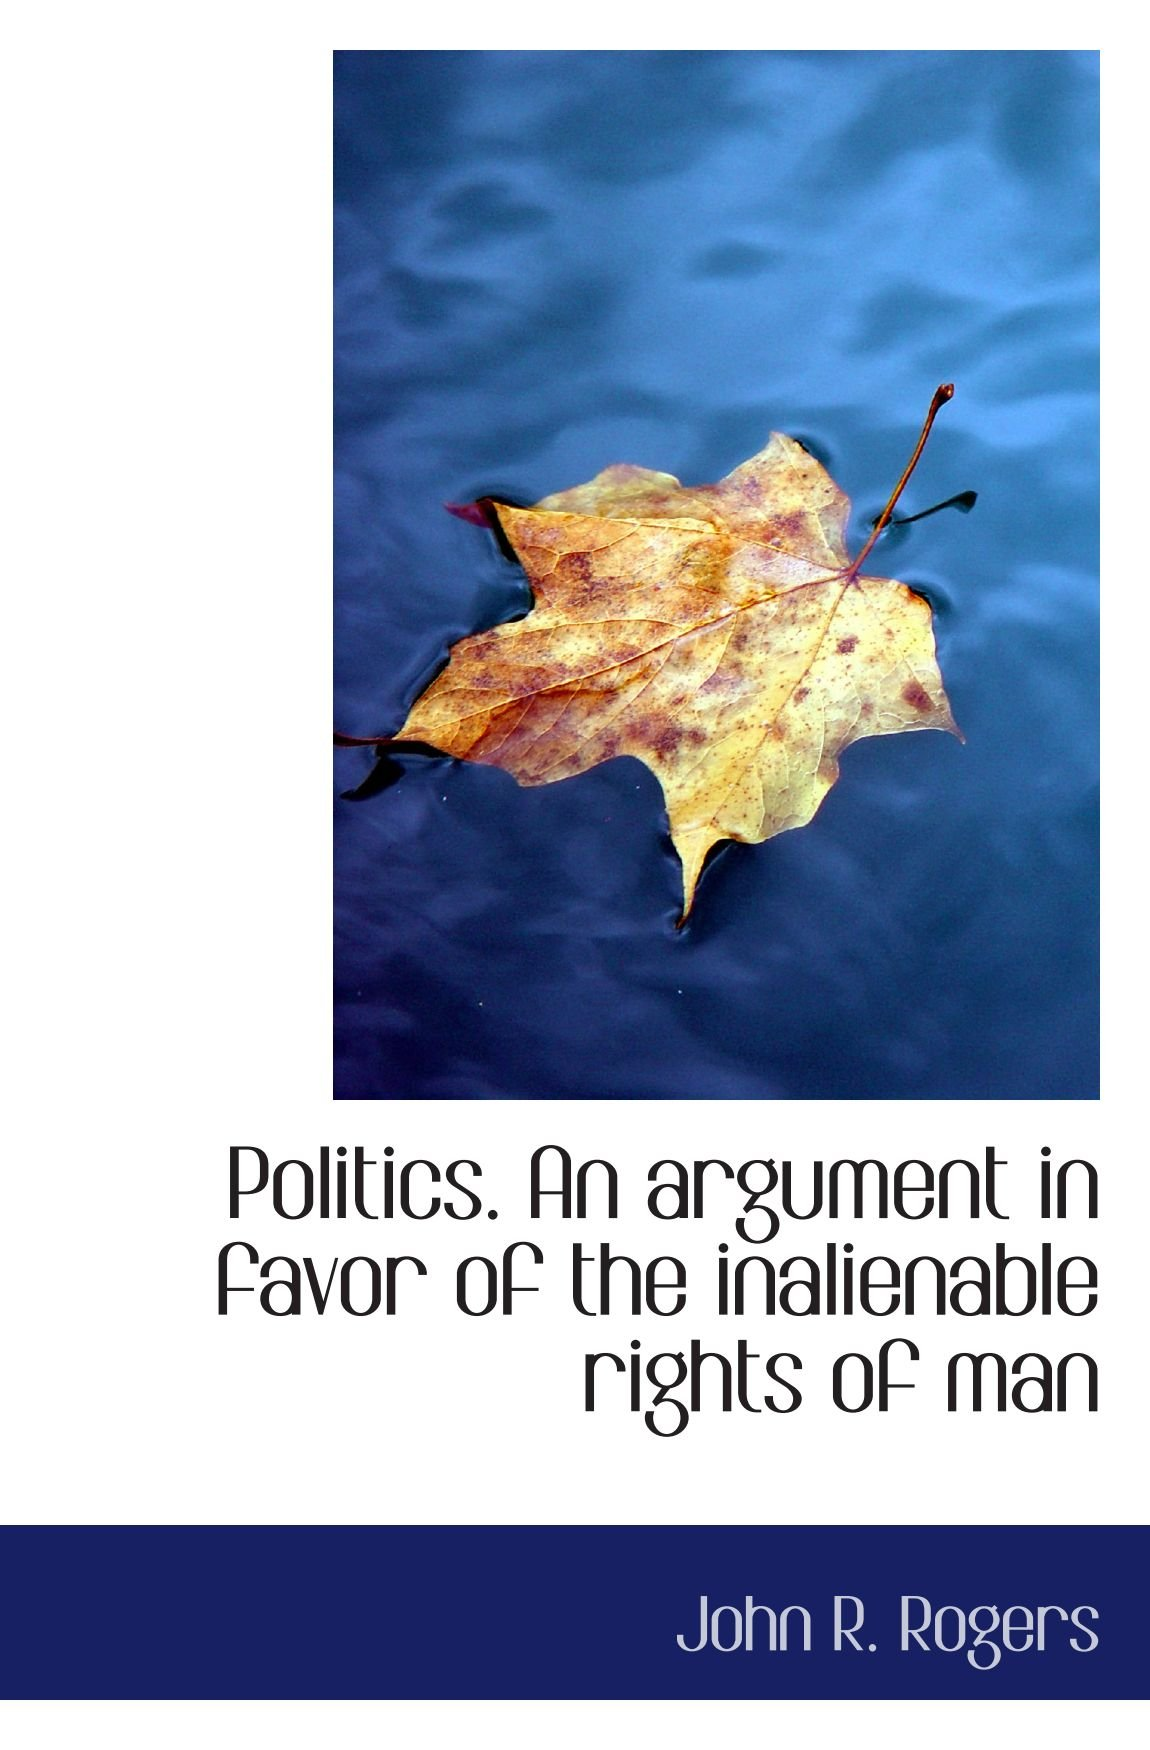 Politics. An argument in favor of the inalienable rights of man pdf